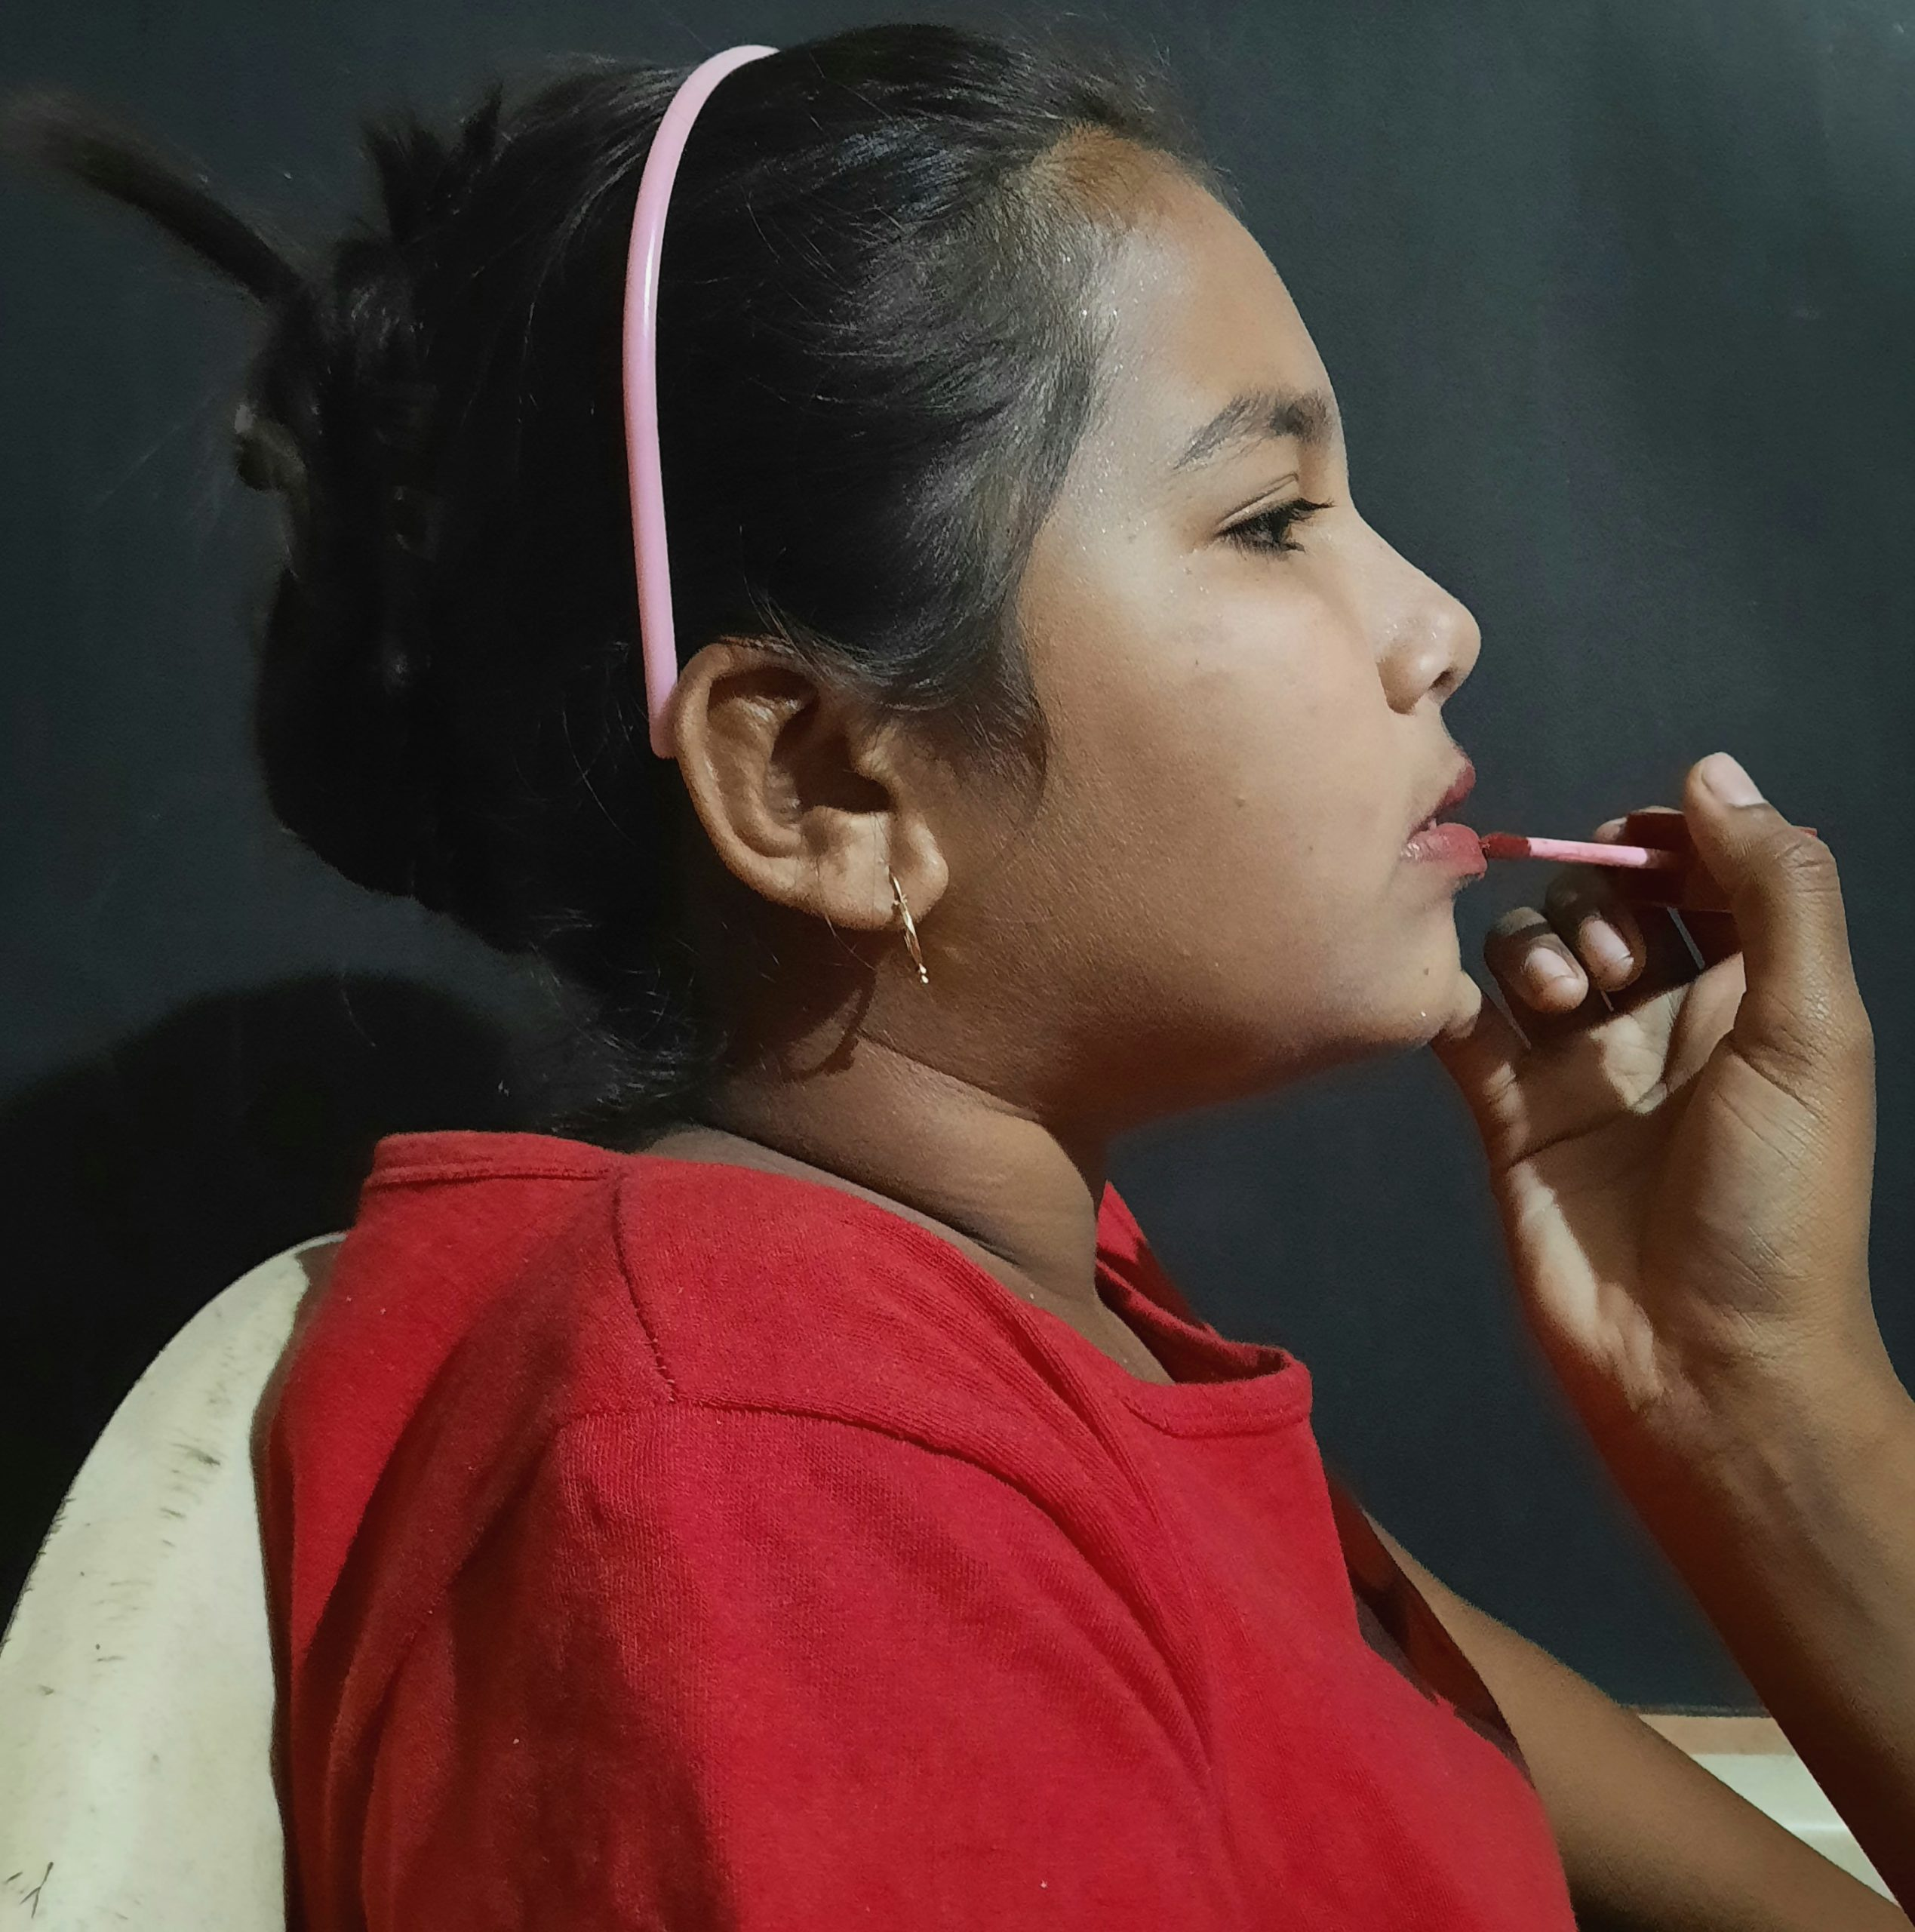 A girl applying lip color